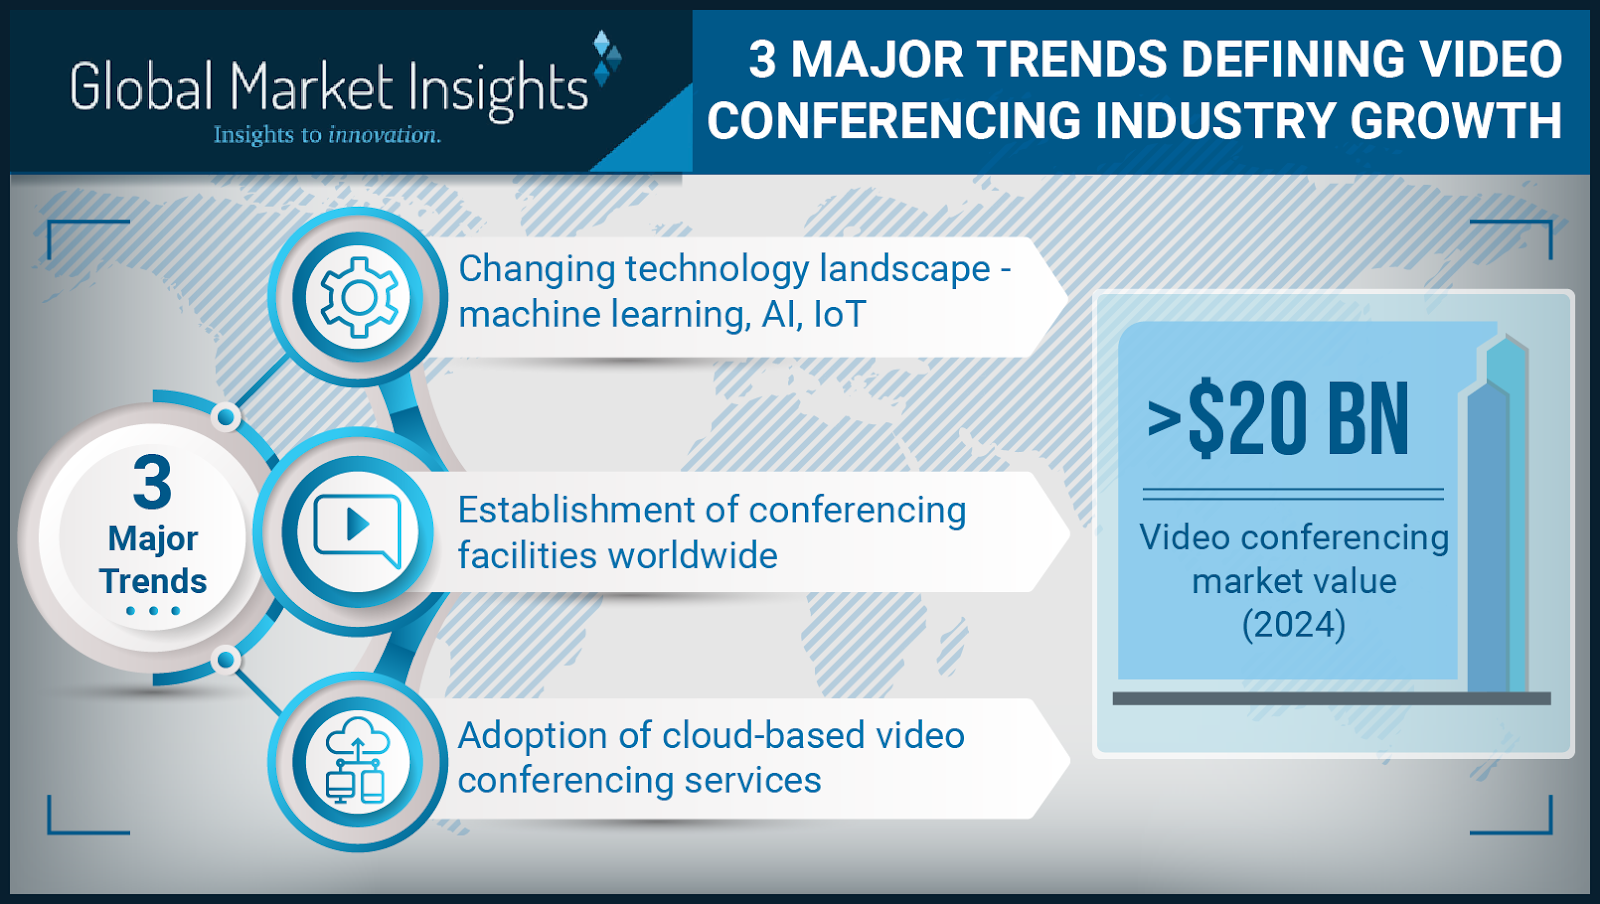 Major trends defining Video Conferencing Industry Growth